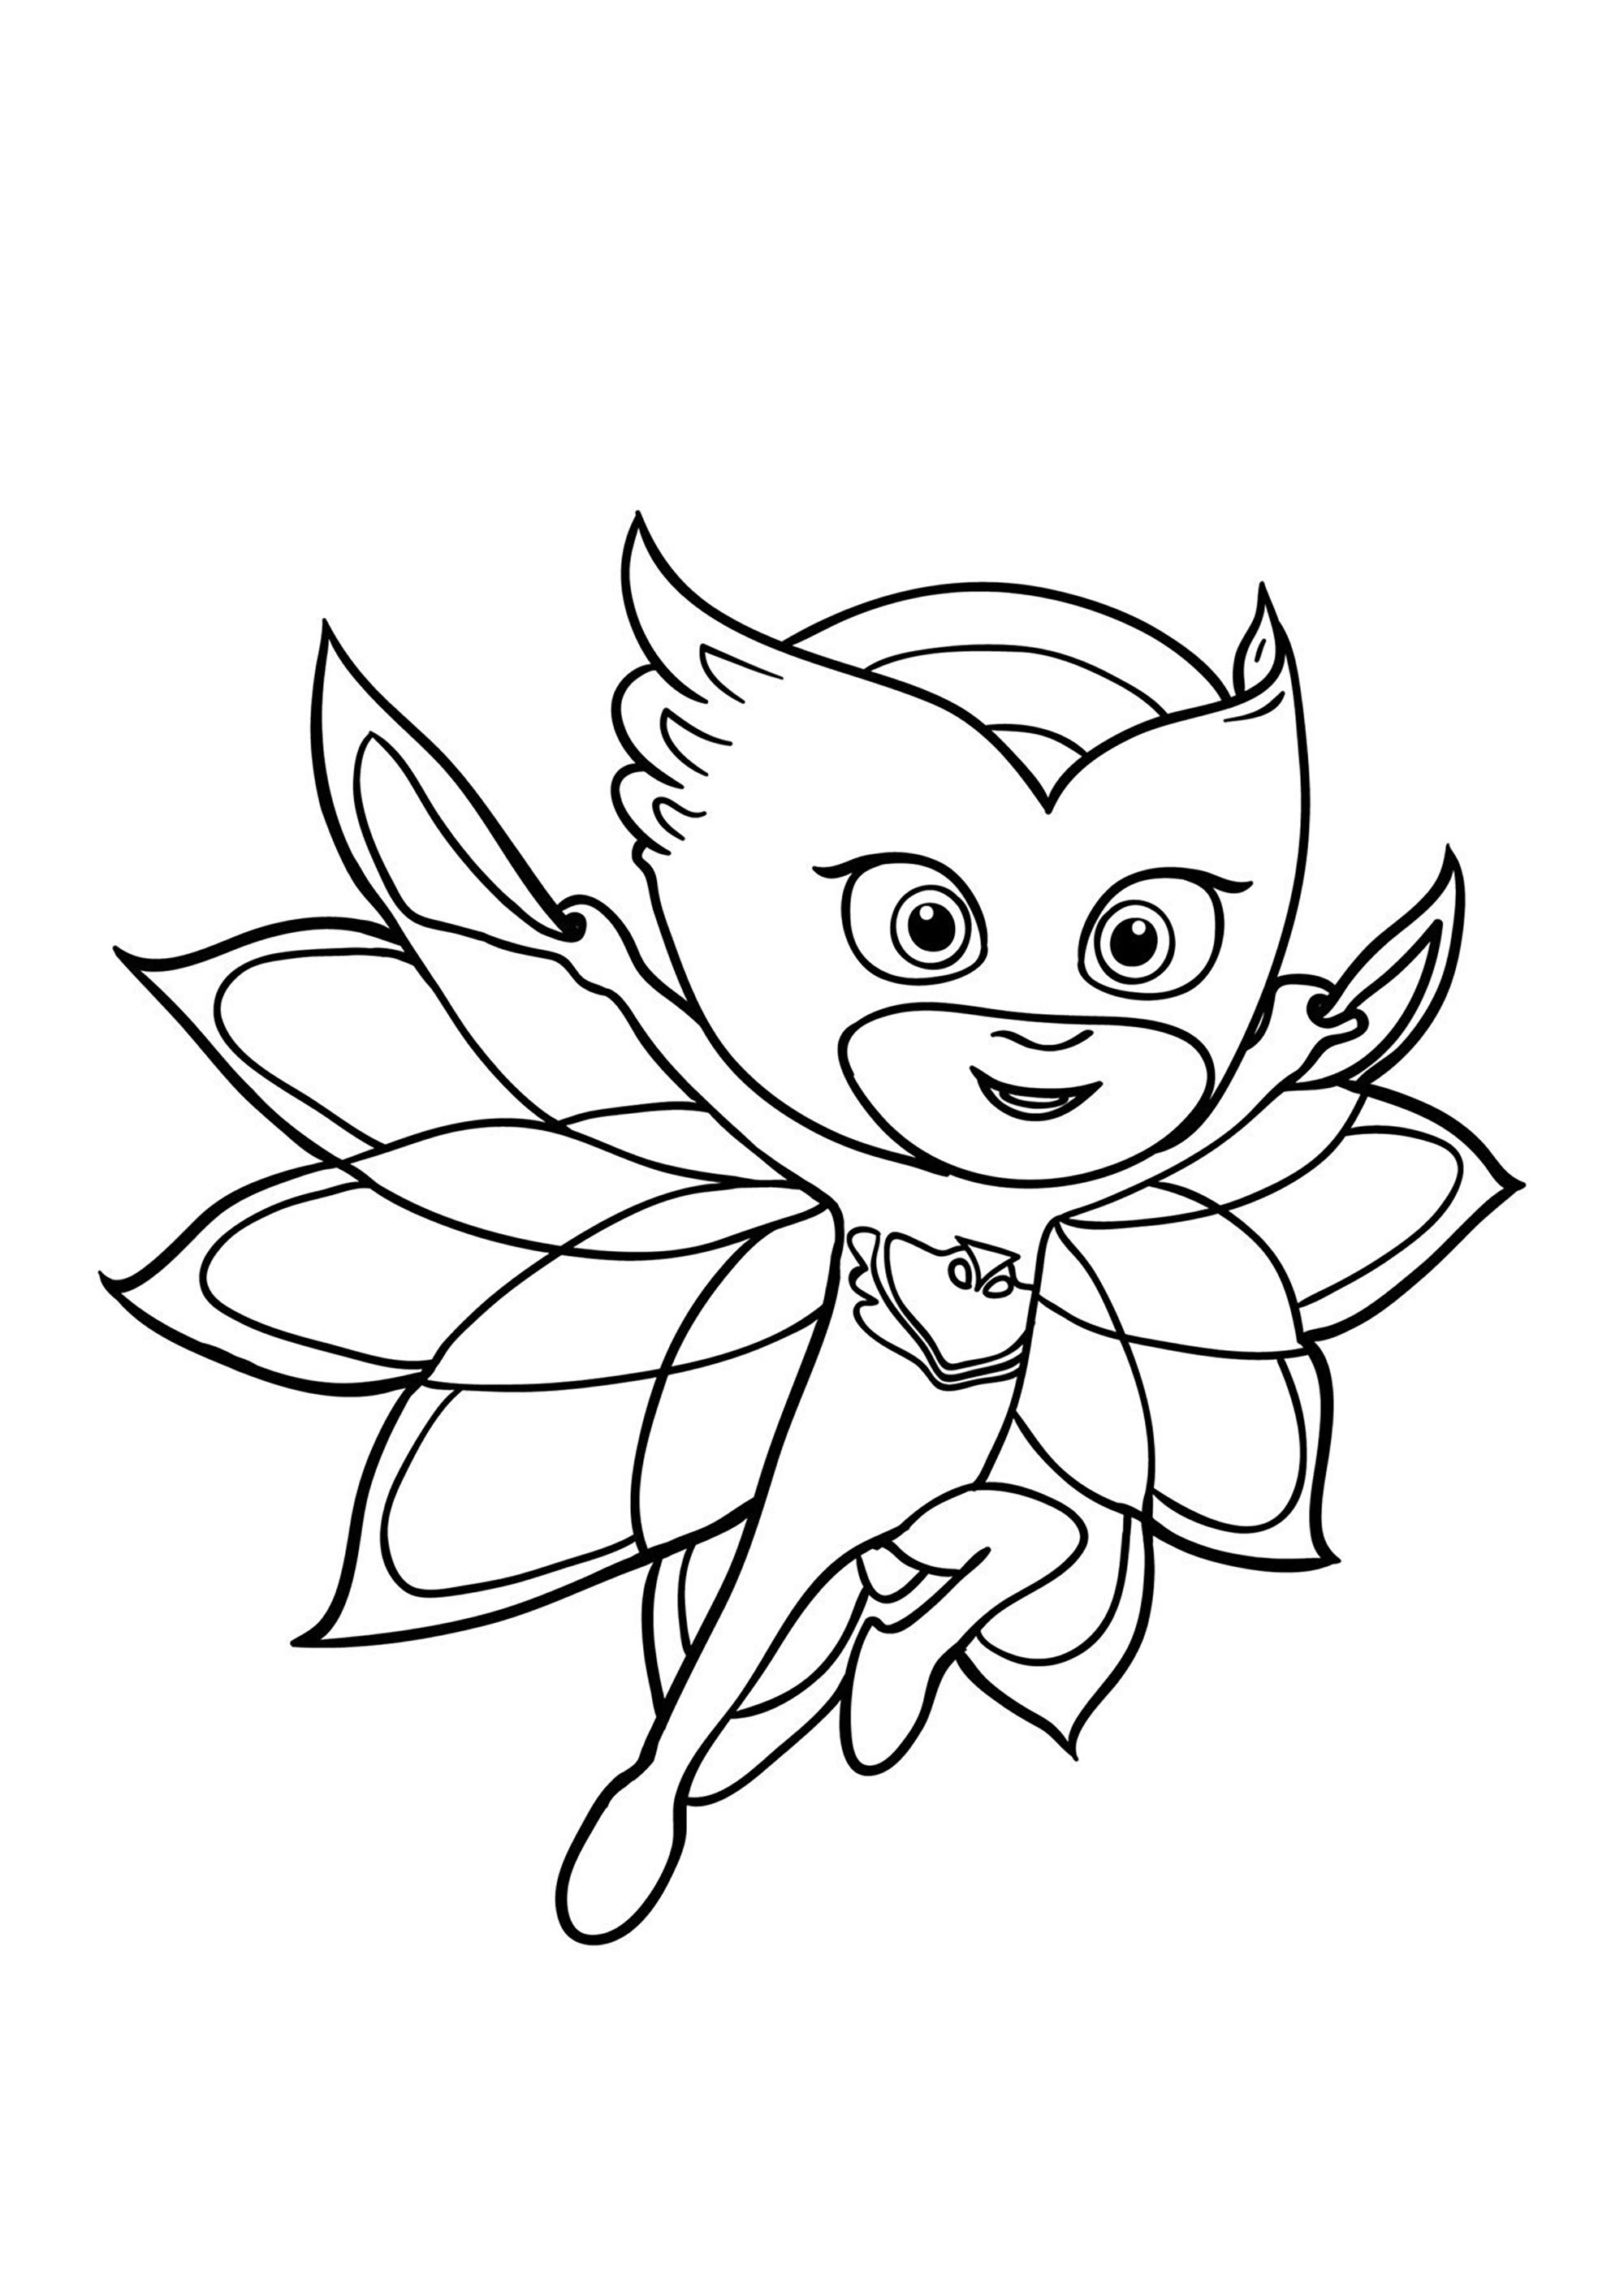 PJ Masks coloring page to print and color for free